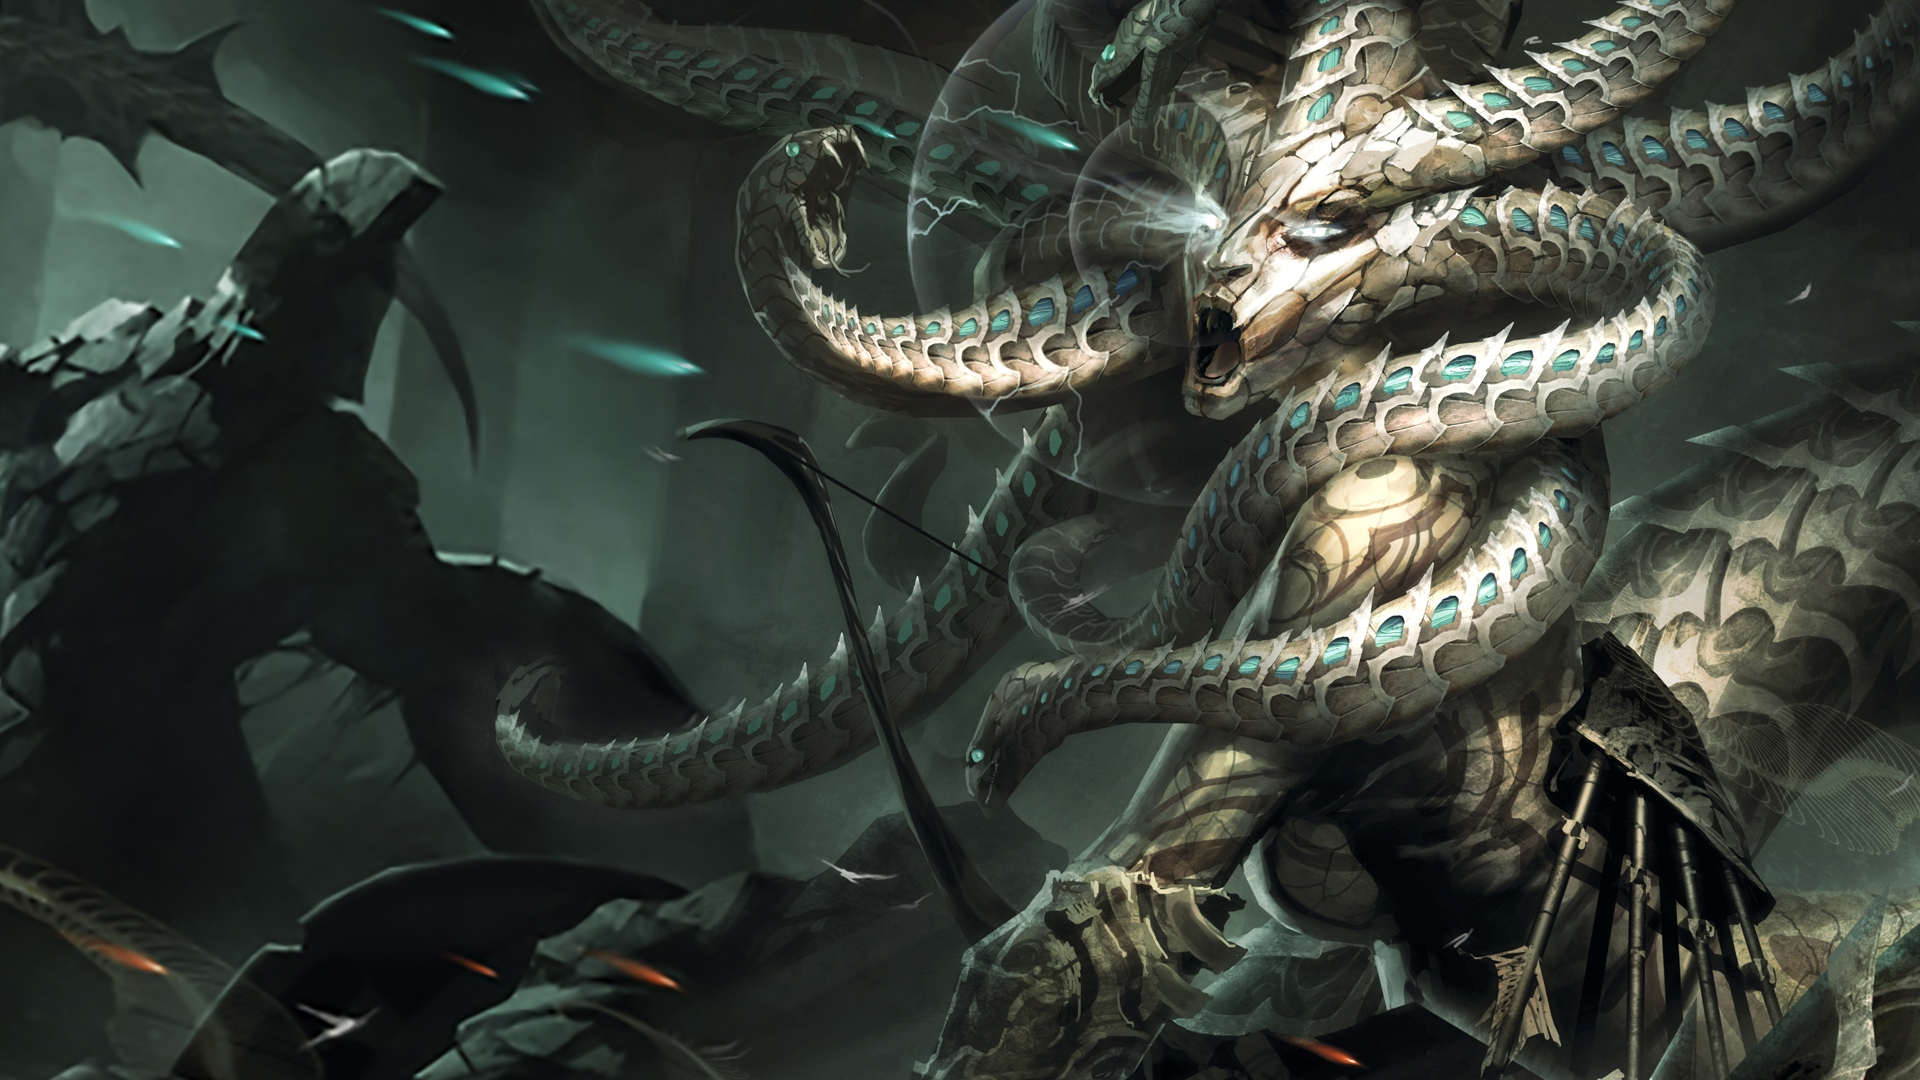 Medusa Full Hd Wallpaper And Background Image  1920X1080  Id512391-5126